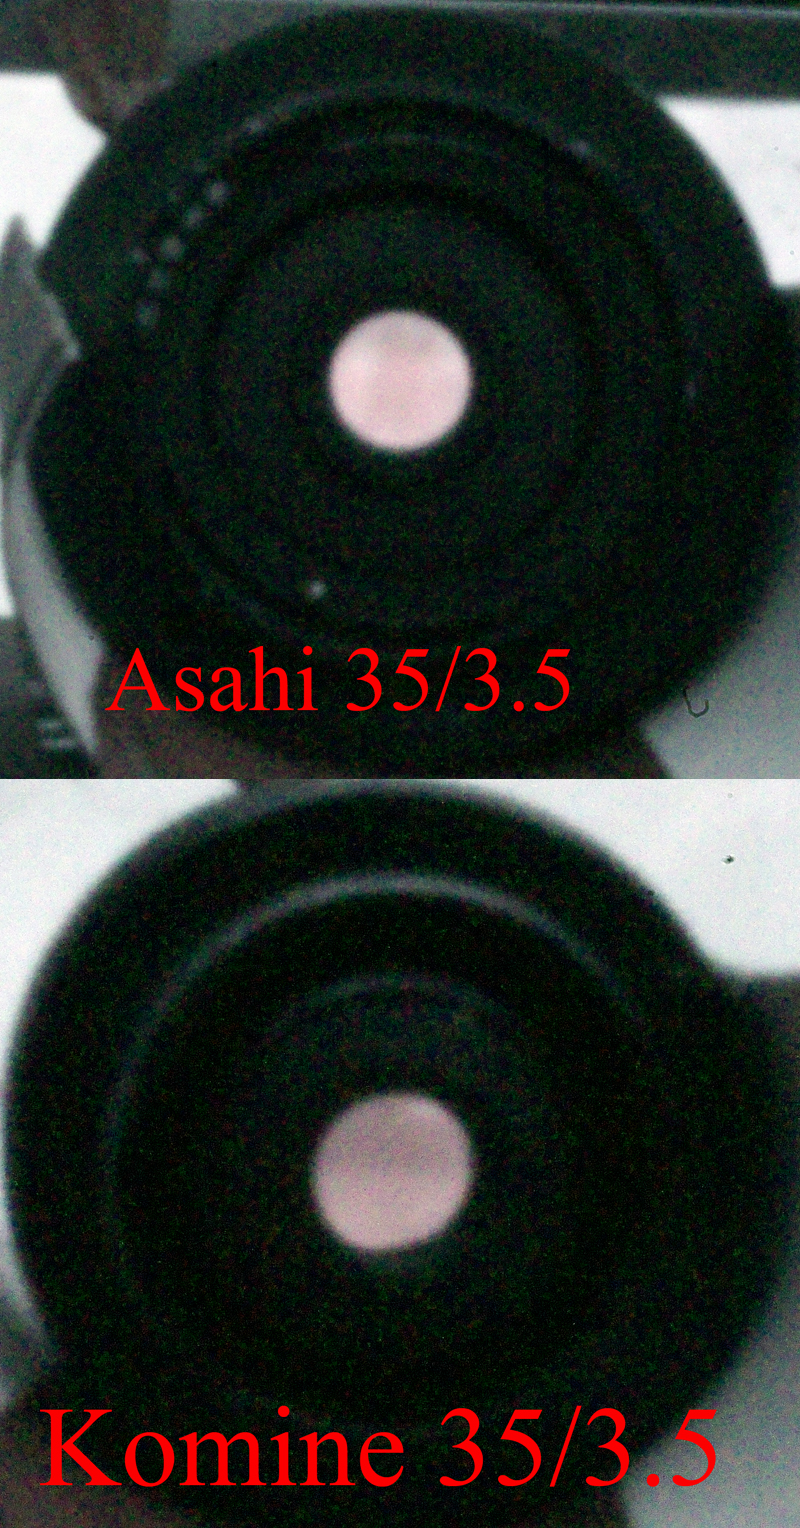 Attached Image: Pinhole Tests.jpg